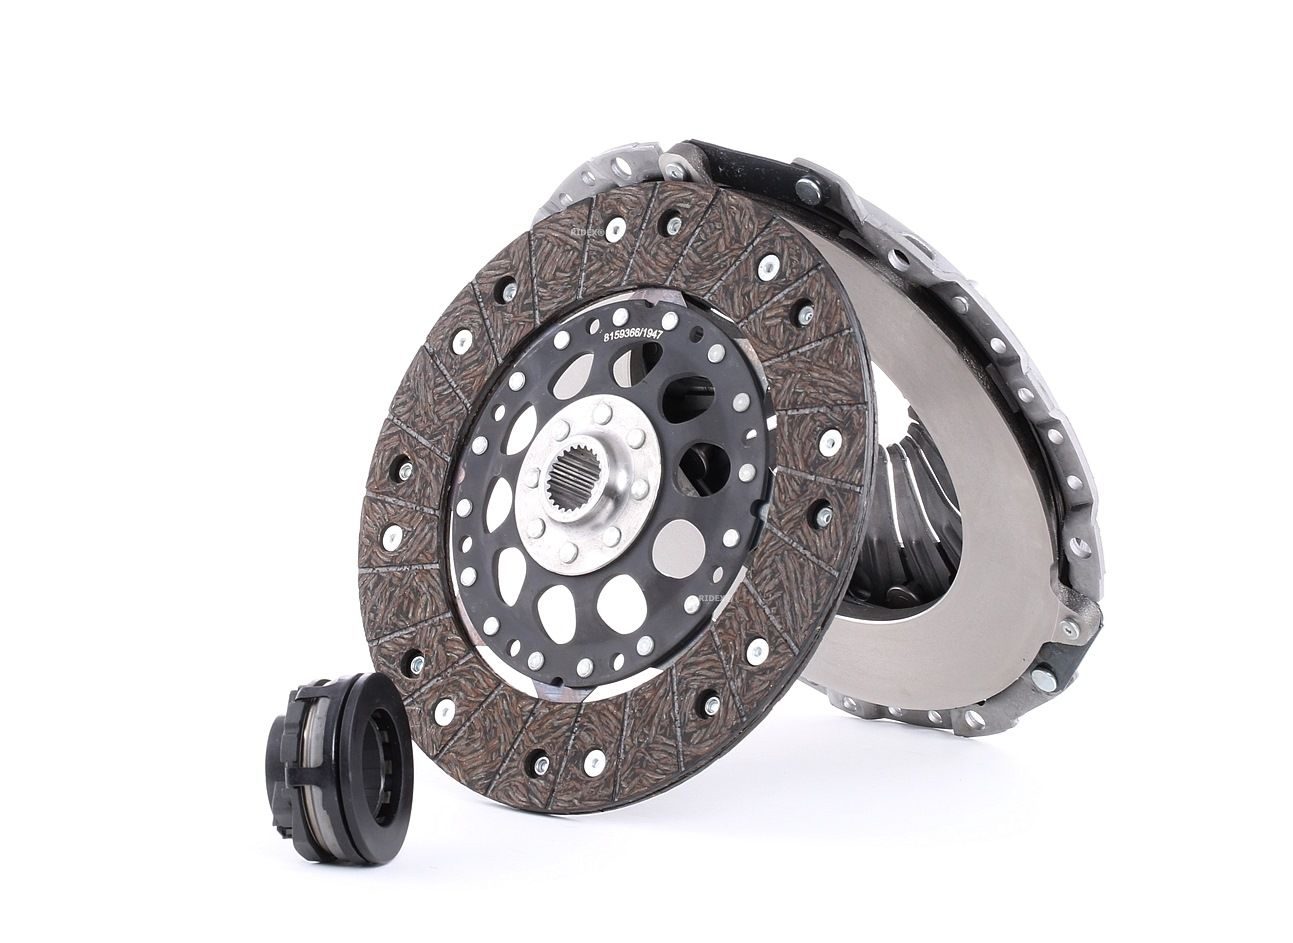 Audi A6 2017 Clutch kit RIDEX 479C0037: Three-piece, with clutch release bearing